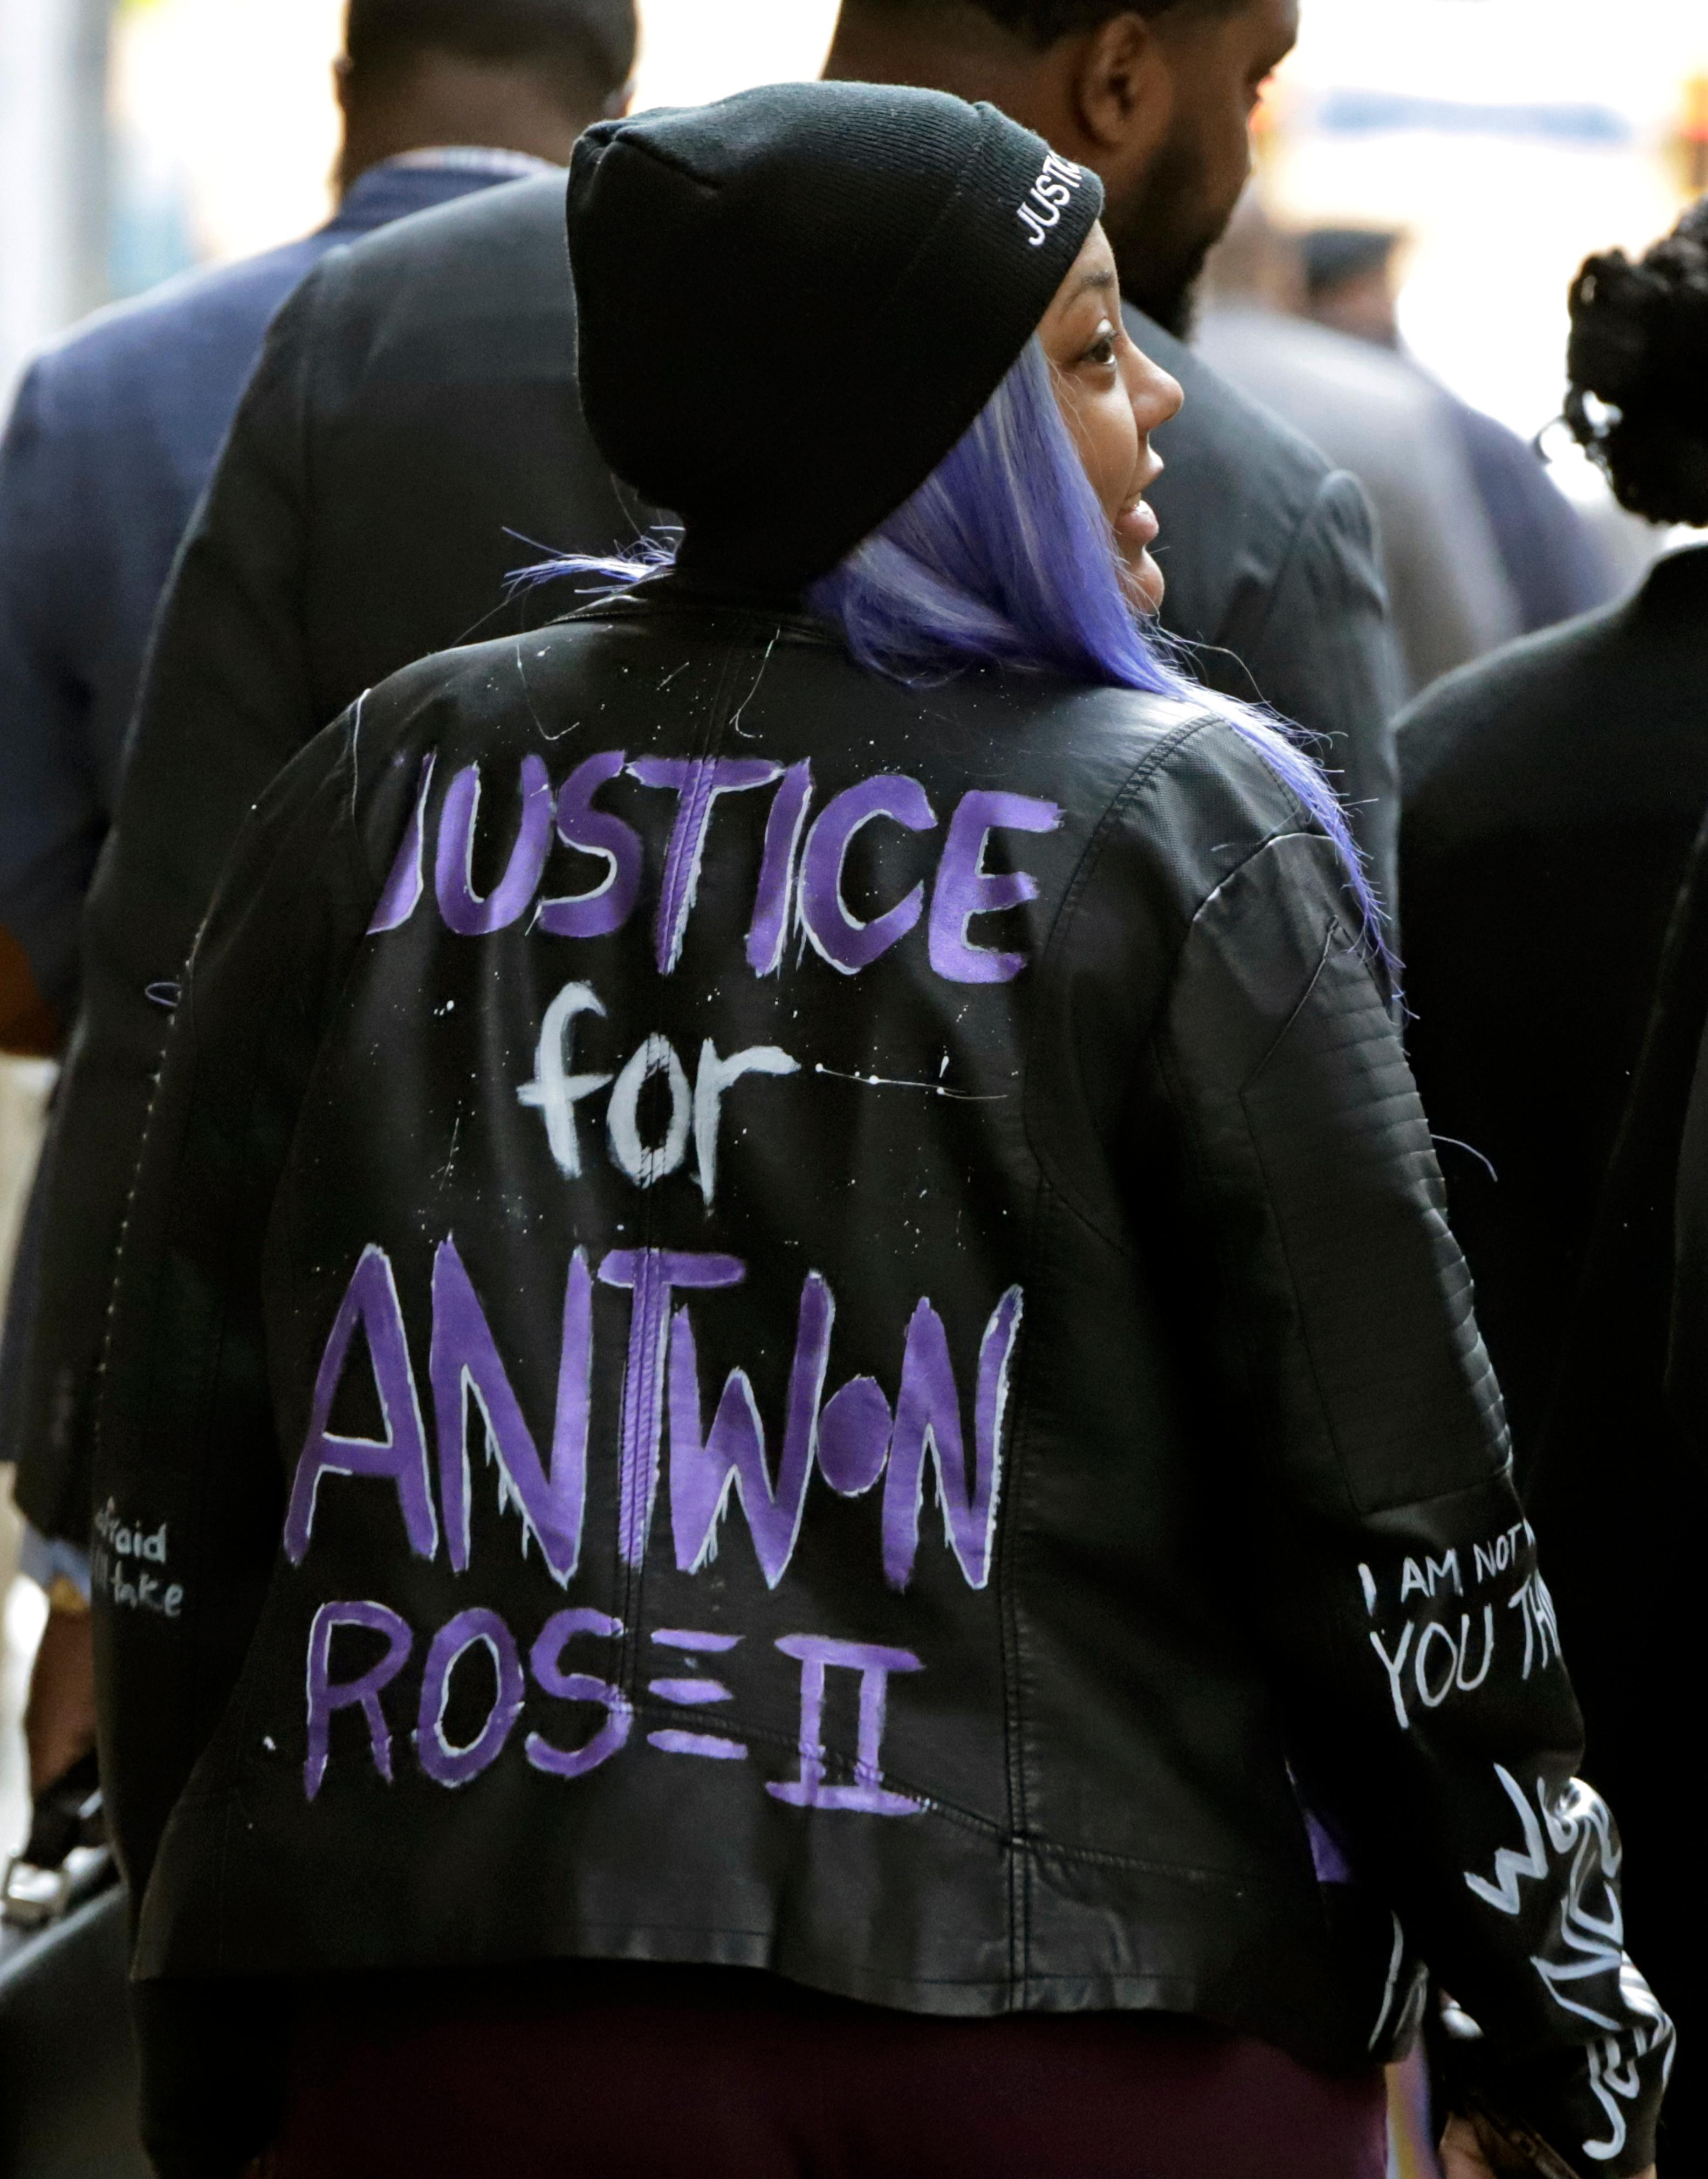 Kyra Jamison, the sister of Antwon Rose II, leaves the Allegheny County Courthouse after the second day of the trial for Michael Rosfeld, a former police officer in East Pittsburgh, Pa., Wednesday, March 20, 2019. (AP Photo/Gene J. Puskar)